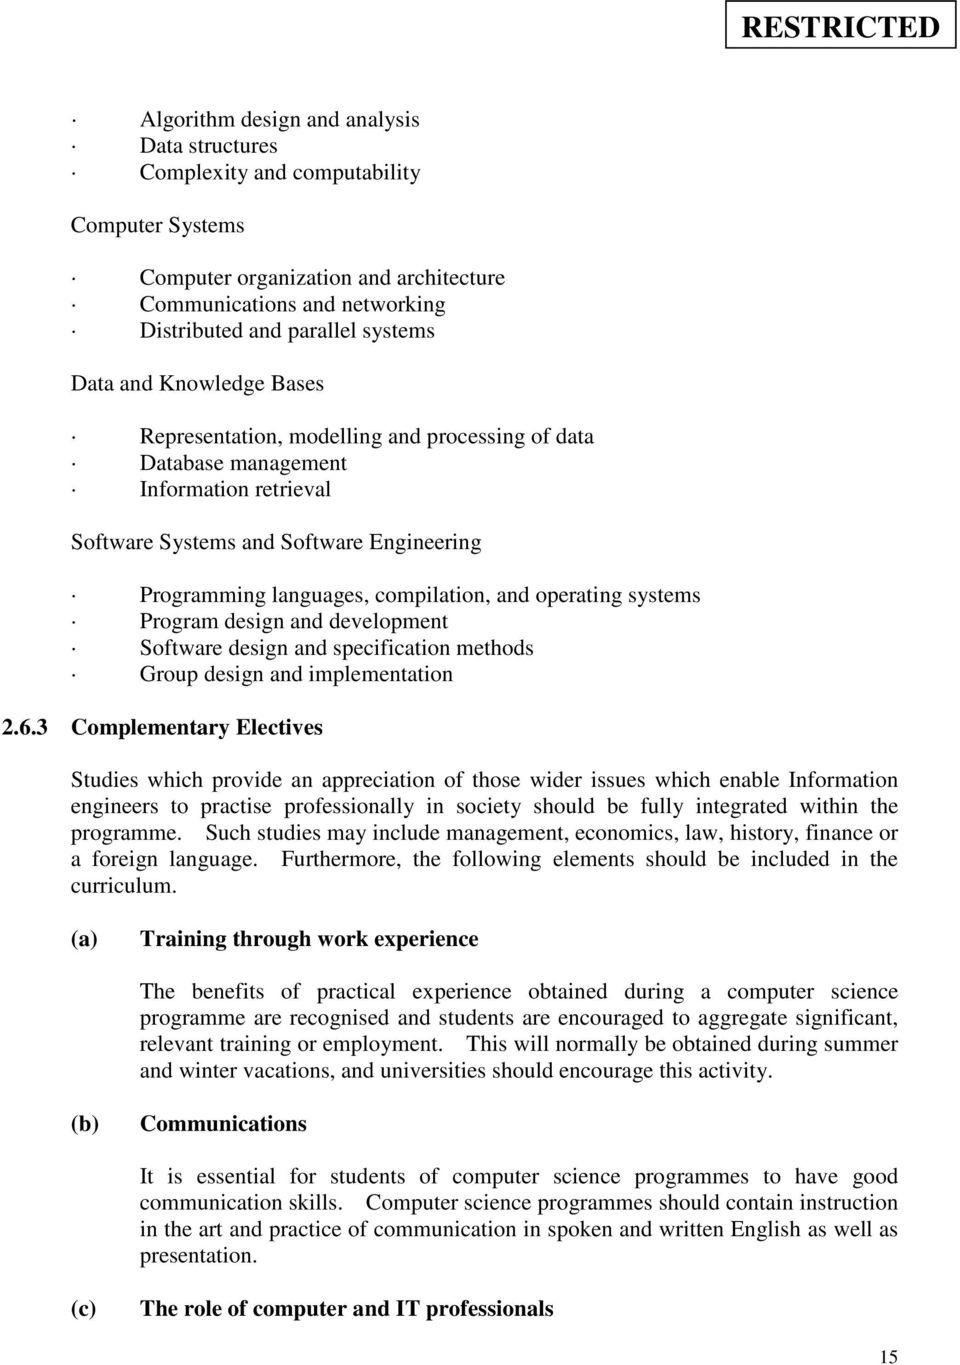 operating systems Program design and development Software design and specification methods Group design and implementation 2.6.